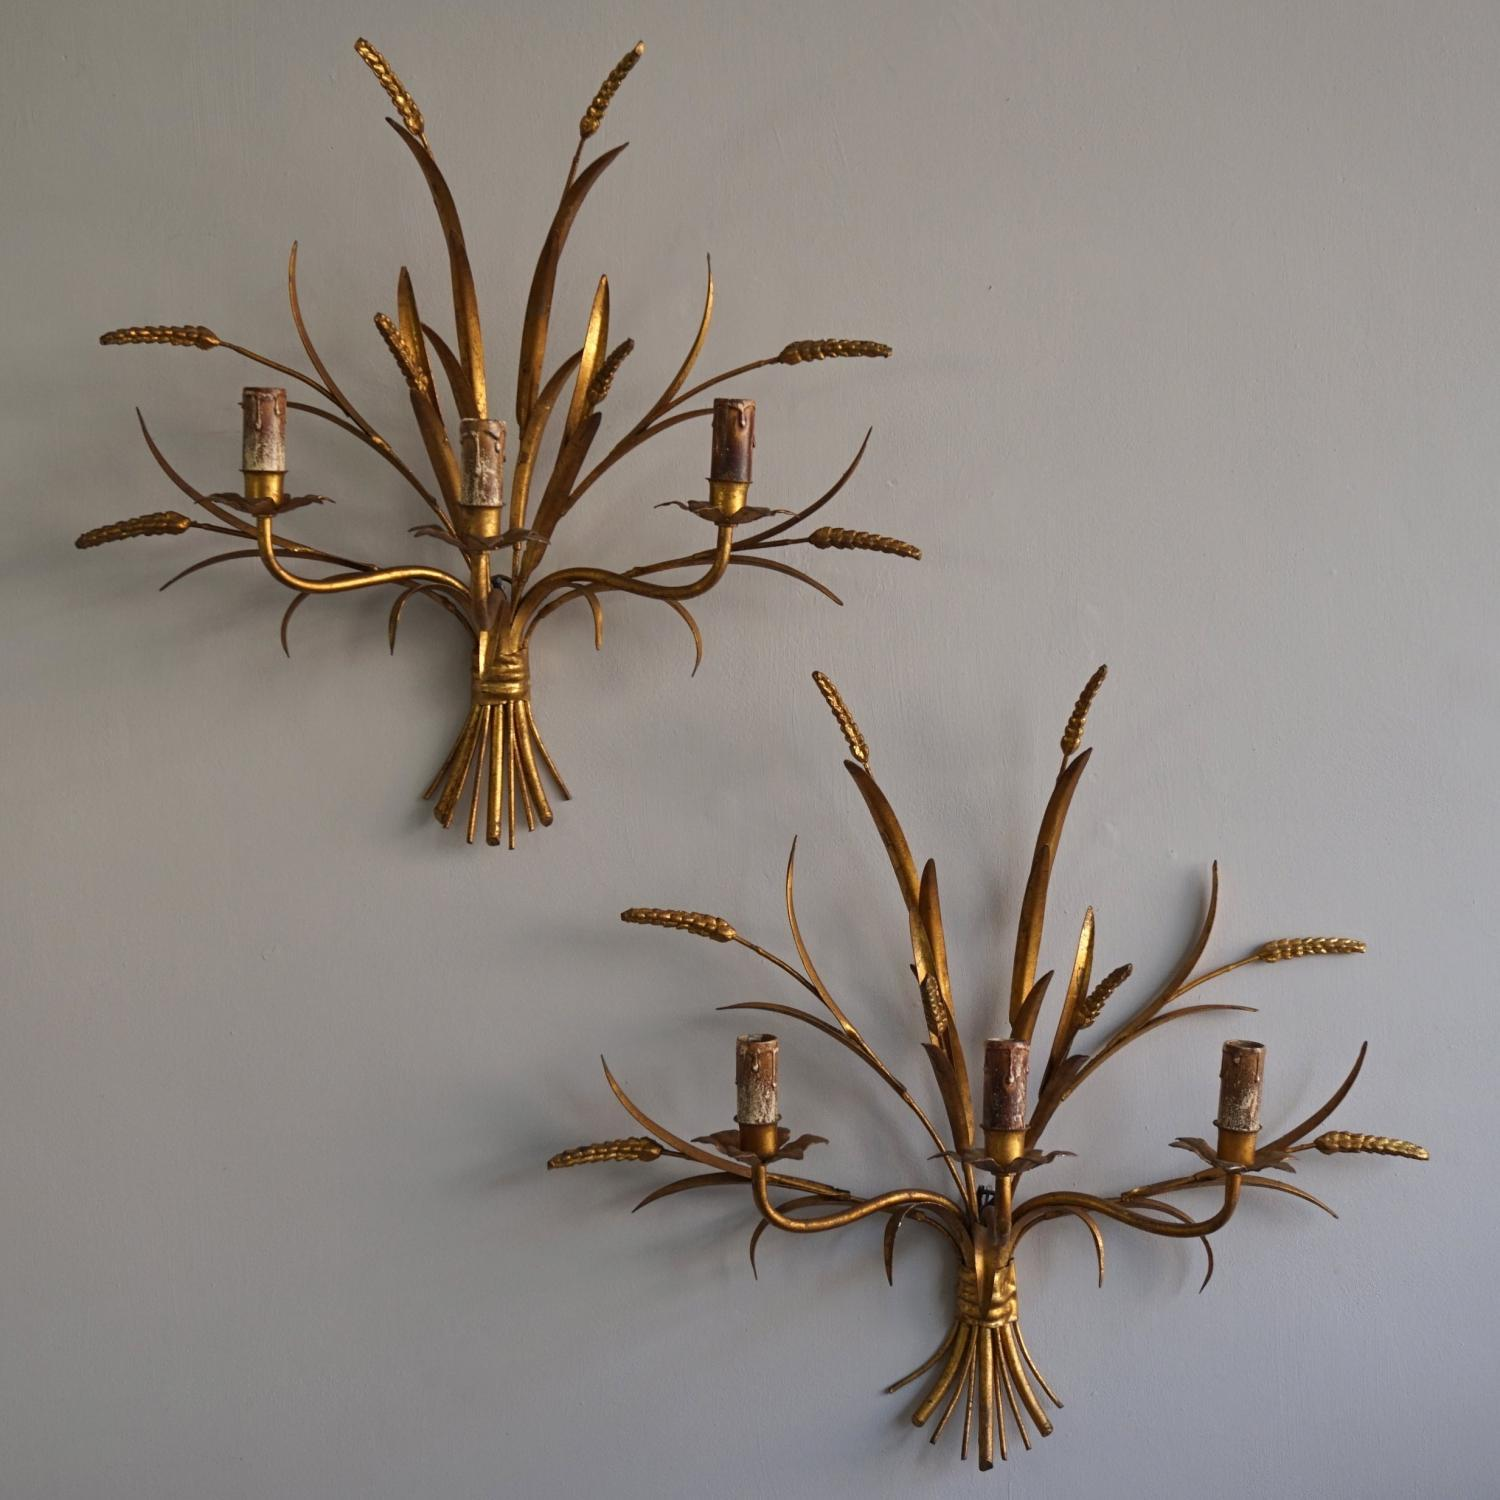 LARGE PAIR OF VINTAGE WHEATSHEAF WALL SCONCES